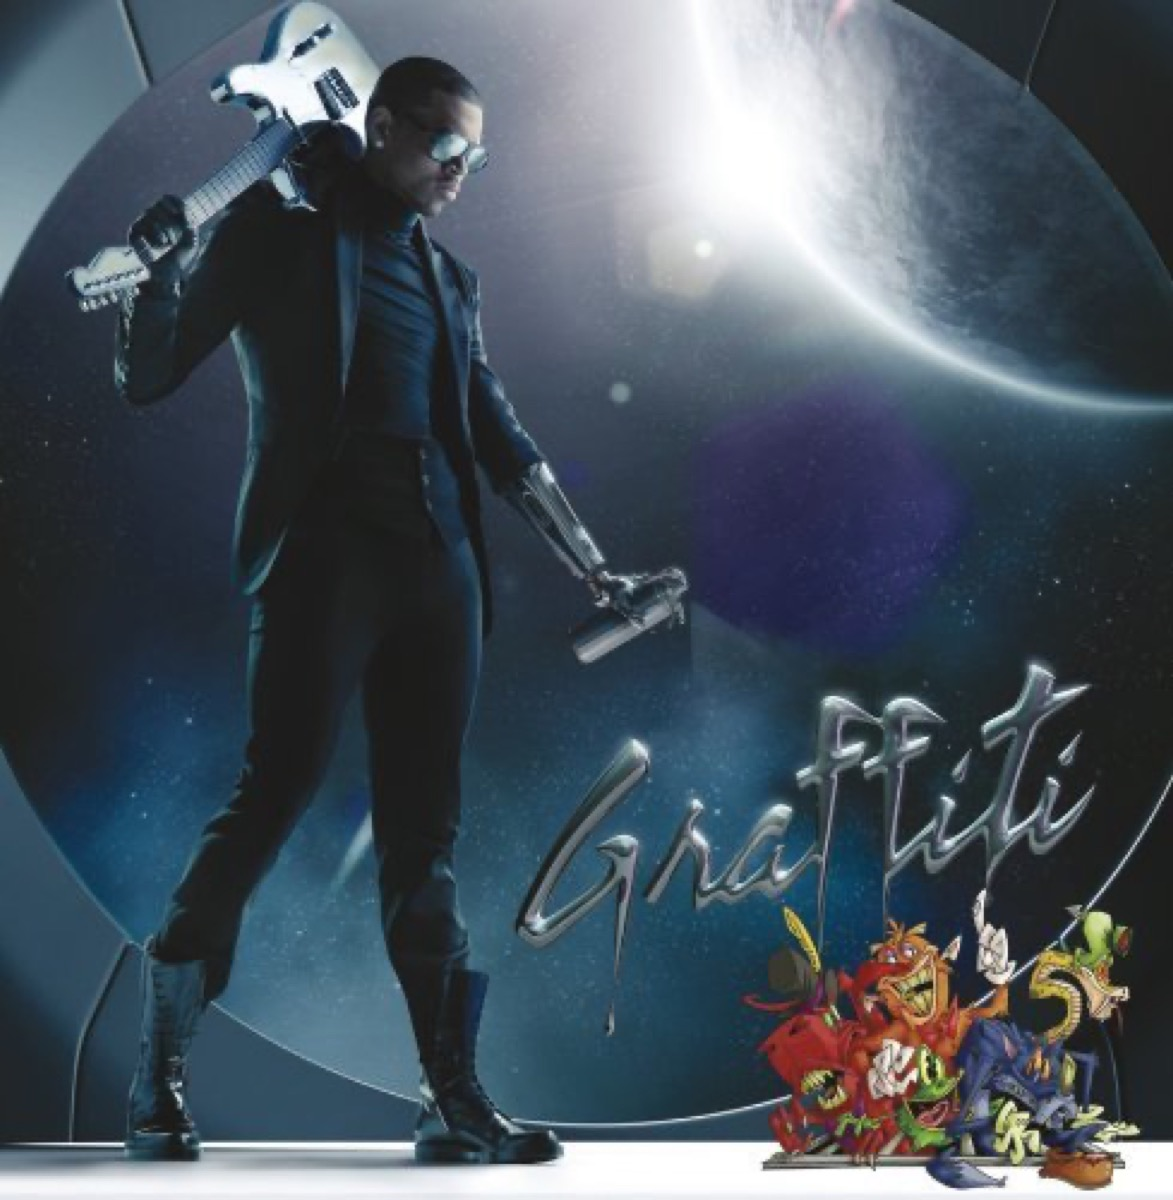 """The album cover of """"Graffiti"""" by Chris Brown"""